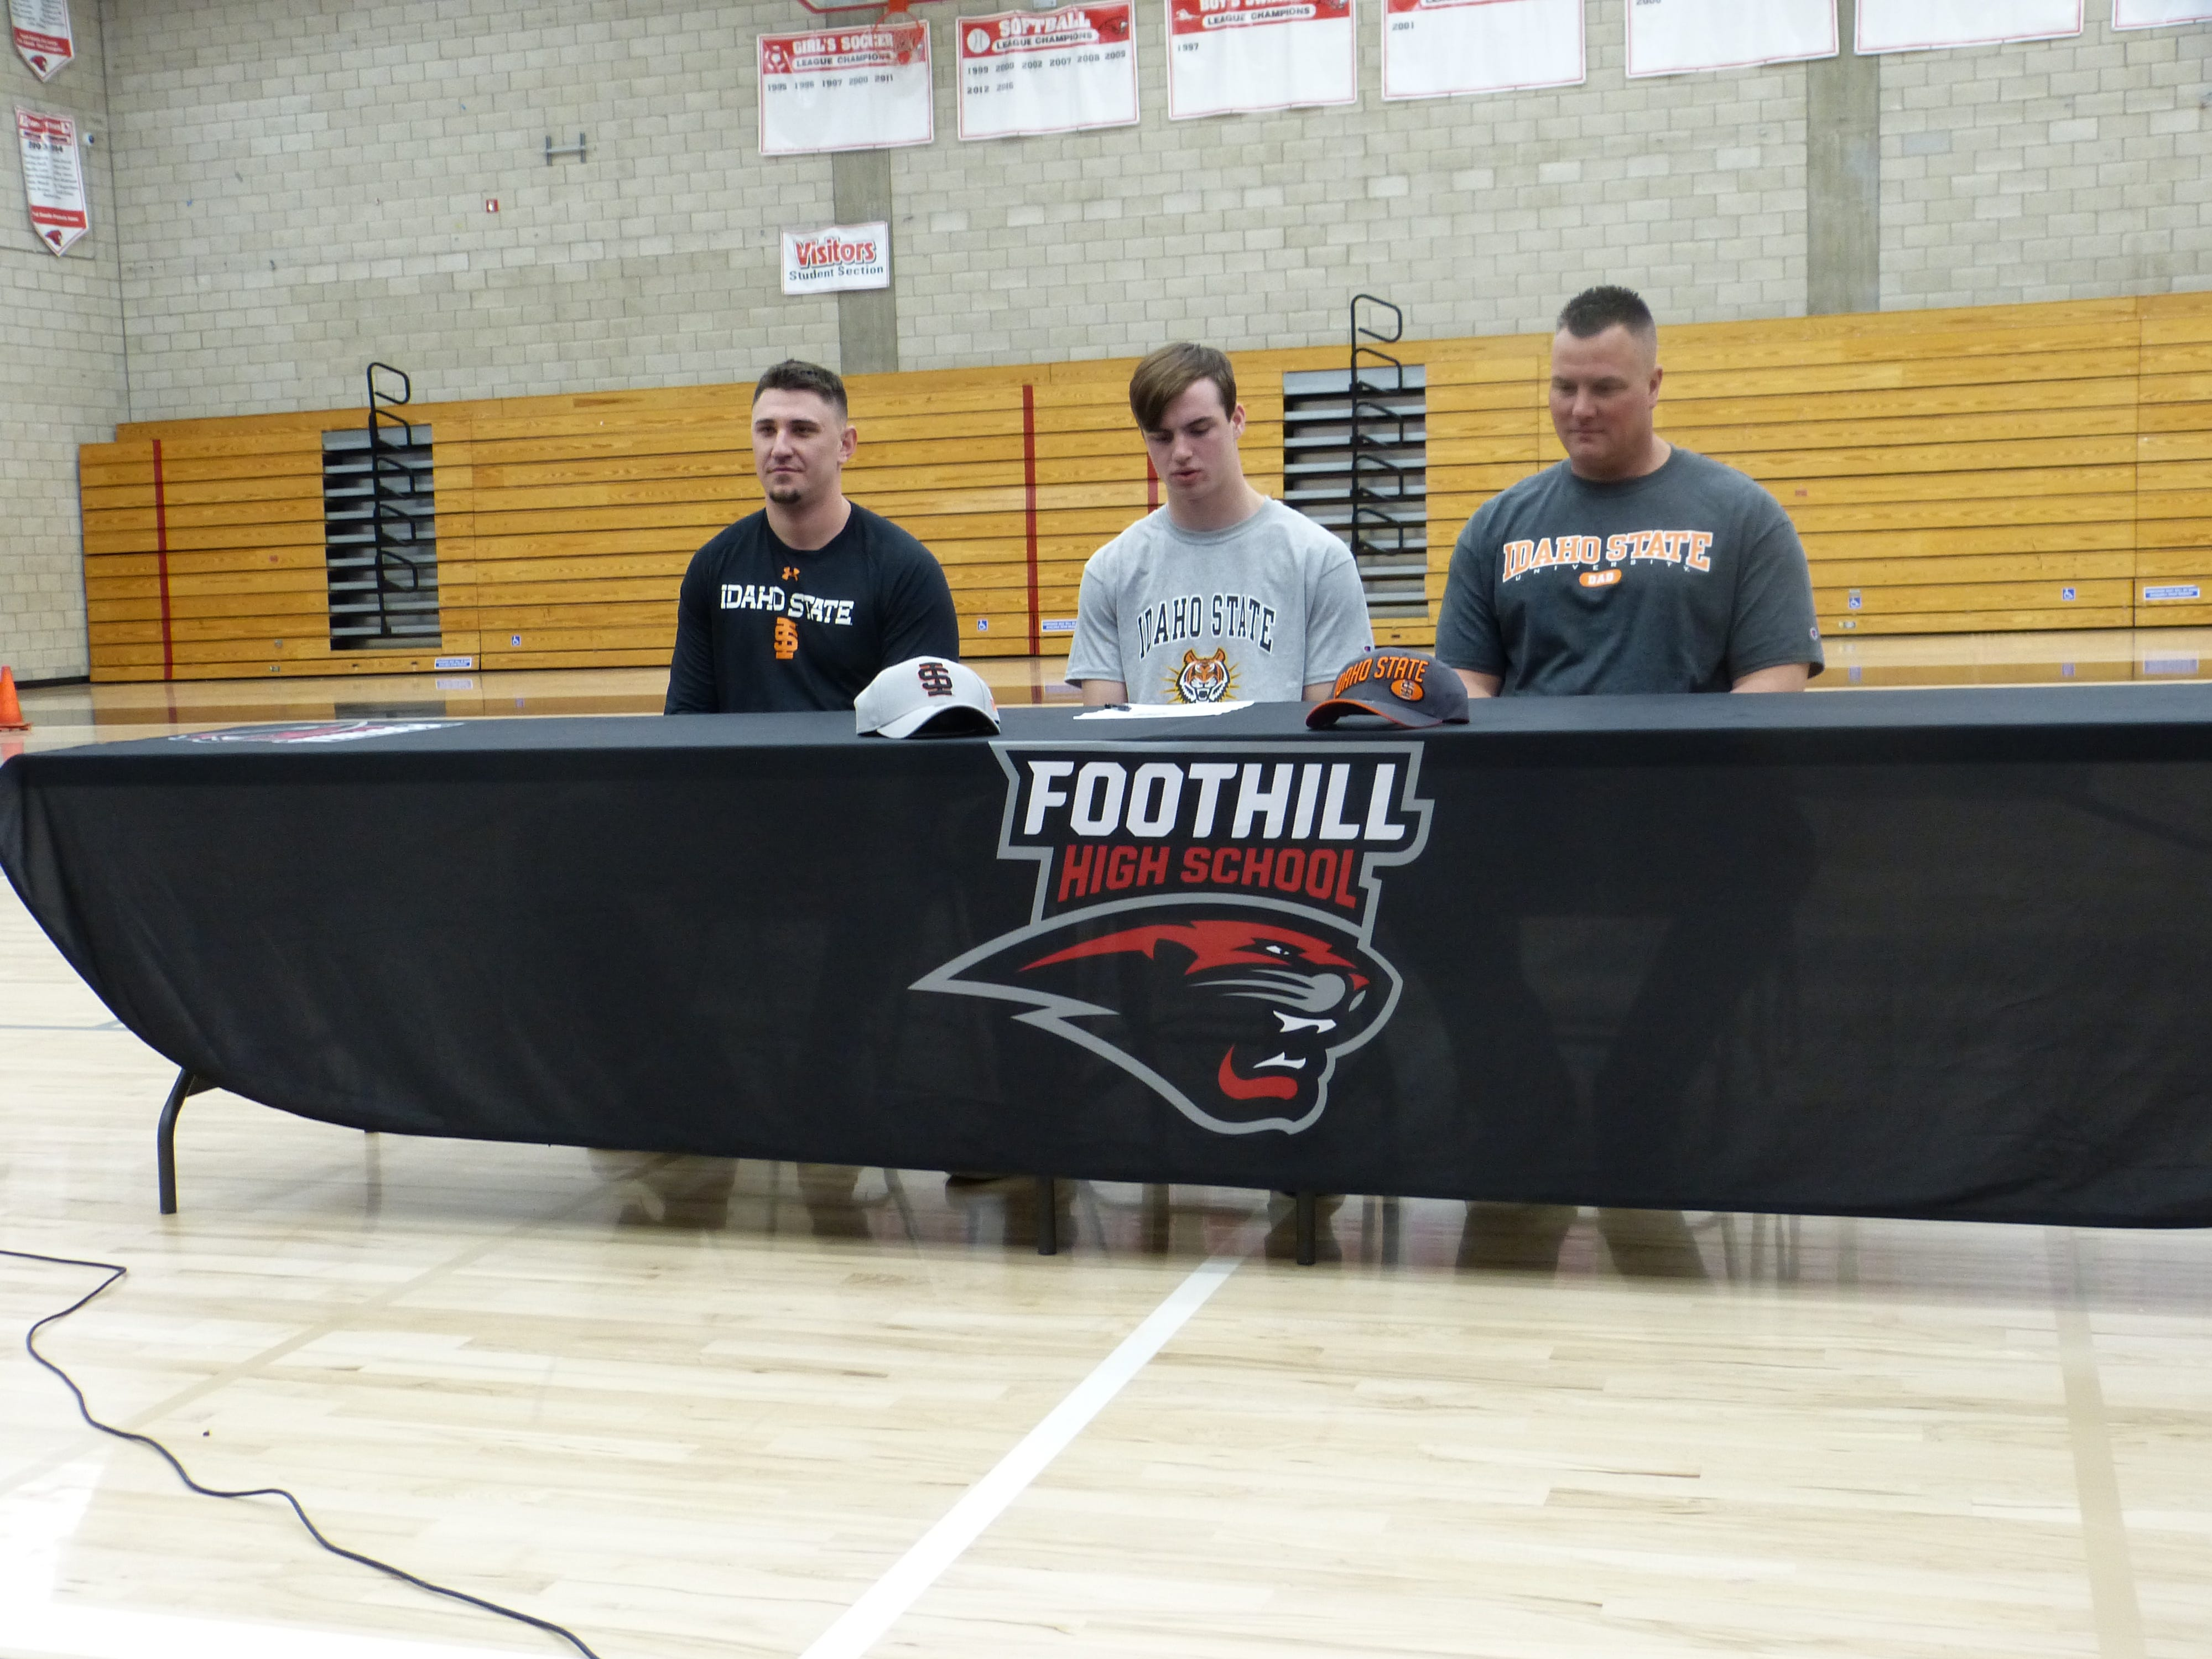 Foothill senior Jayden Gordon prepares to sign his letter of intent to play football at Idaho State on Wednesday, Feb. 6, 2019.